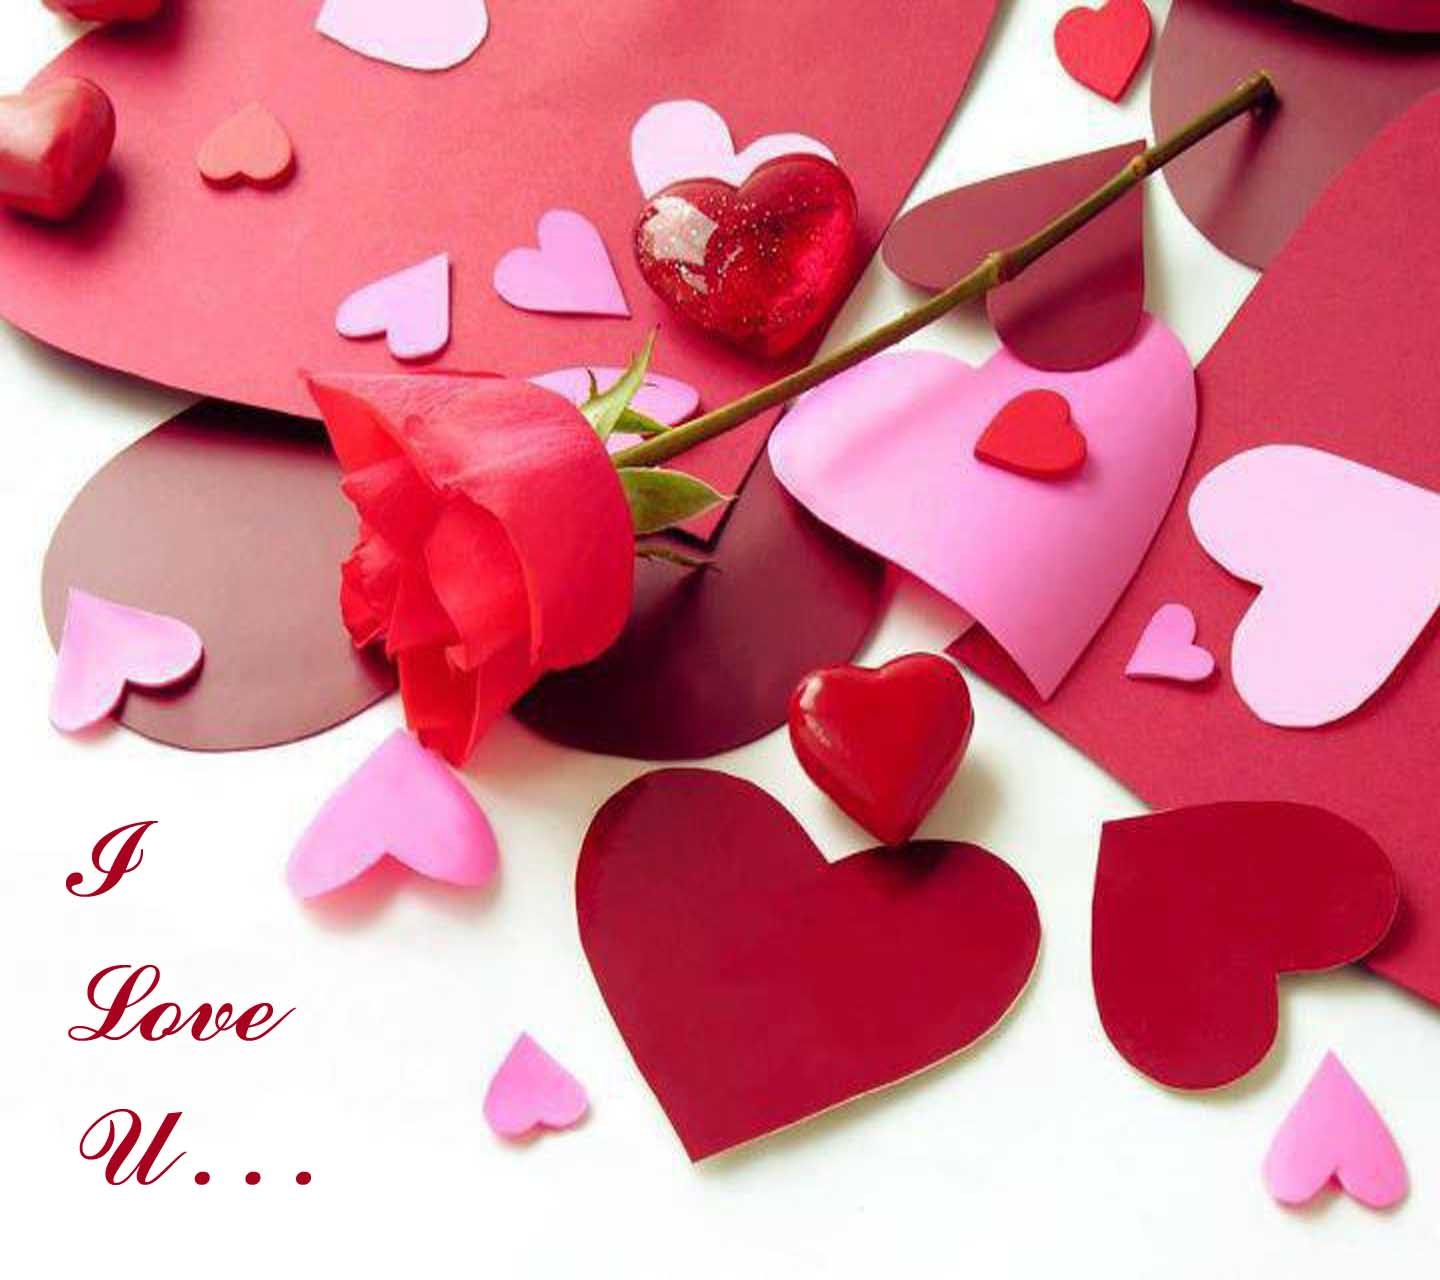 Cute I Love U Wallpapers For Mobile Wallpapers